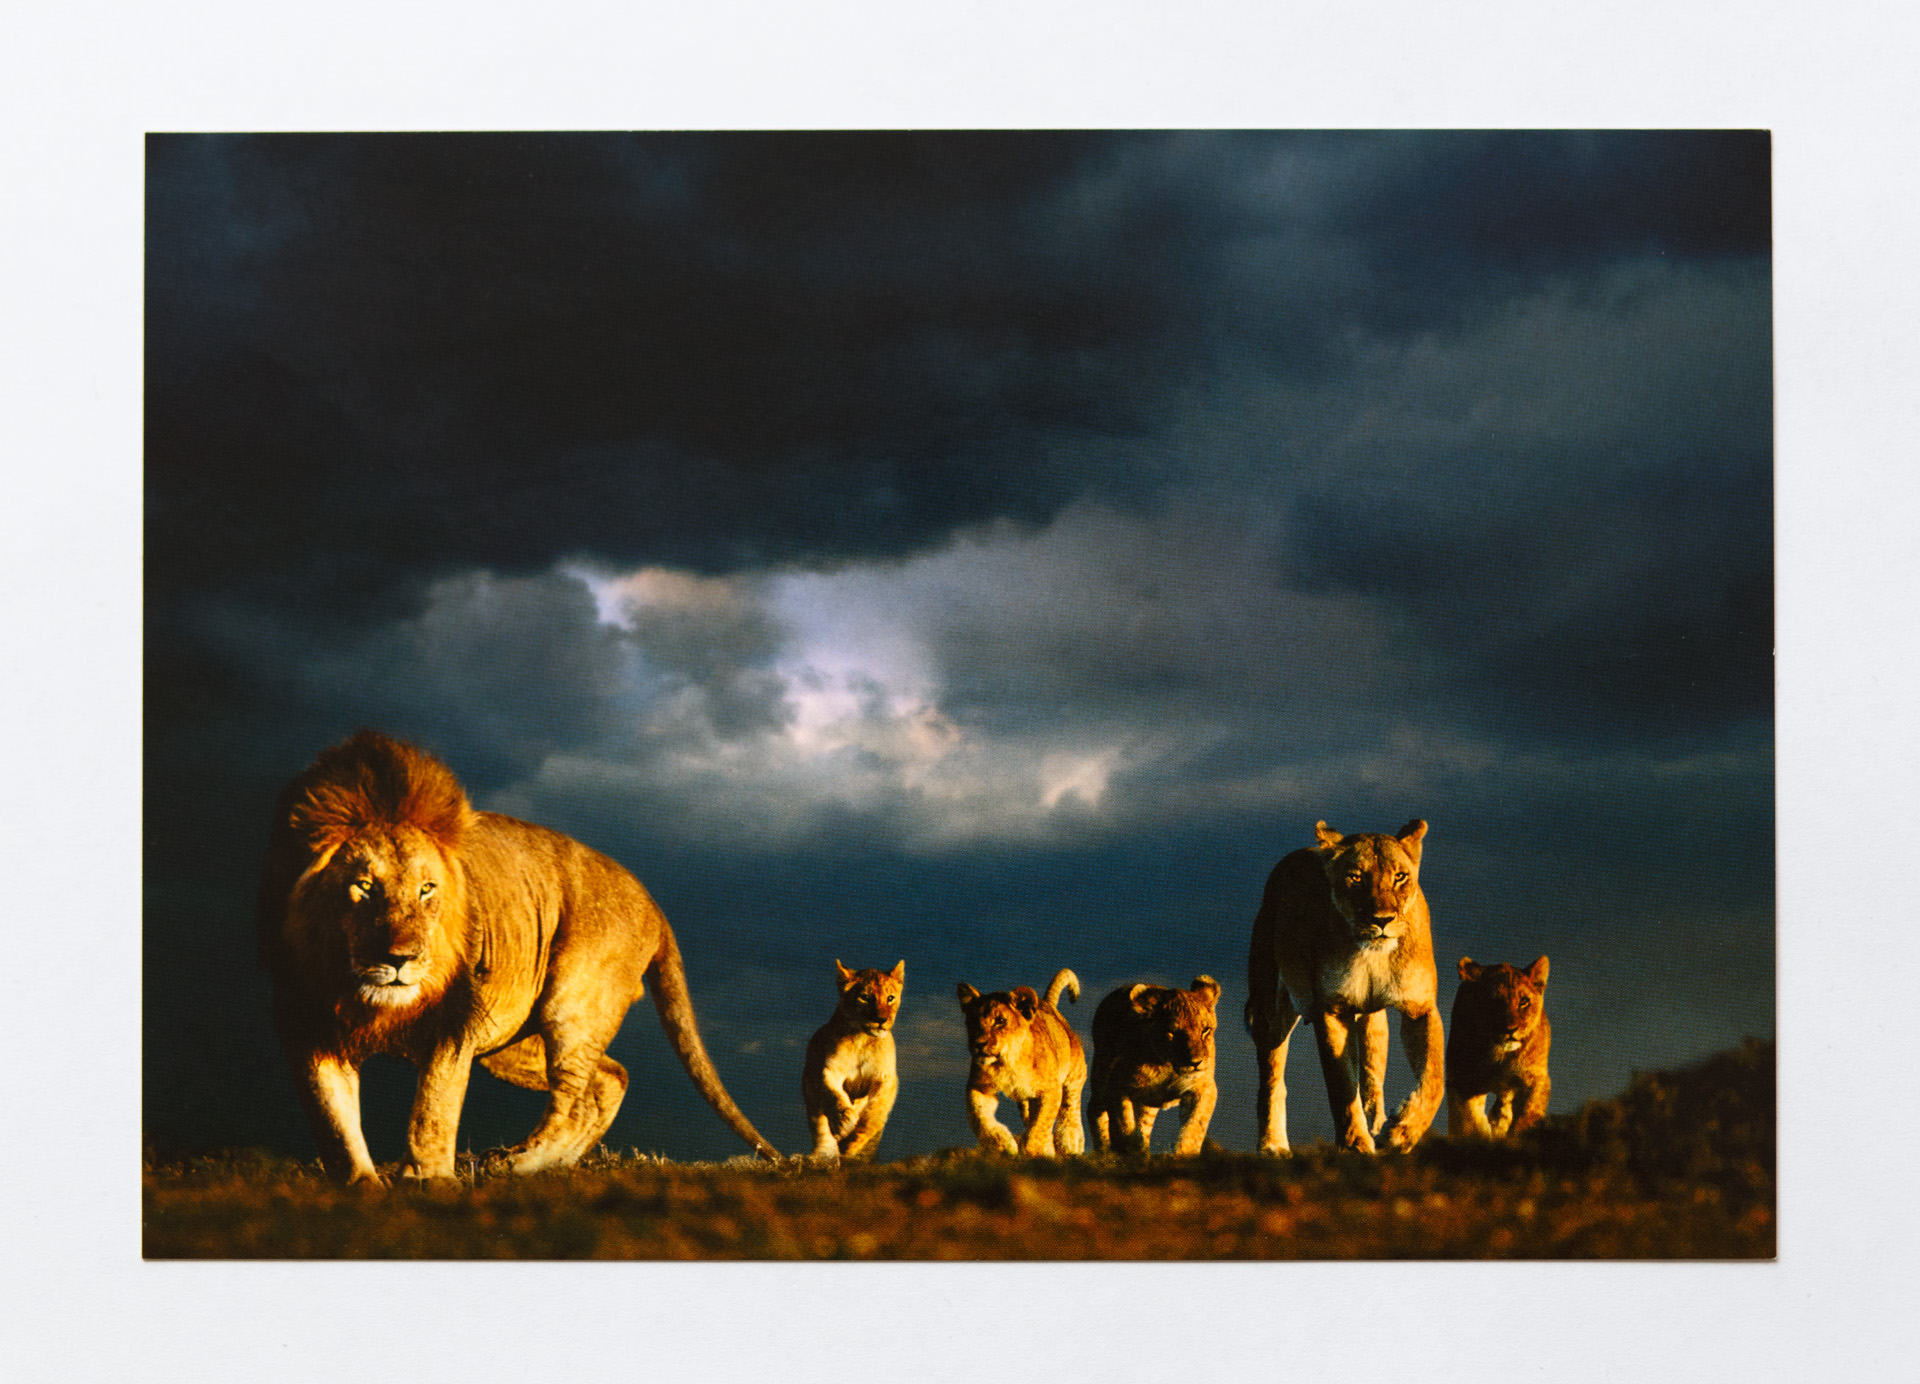 'Lions at dawn' - Masai Mara, Kenya. Steve gave away postcards of this photo of a pack of lions. He said it has been used all around the world and is one his most successful photos.